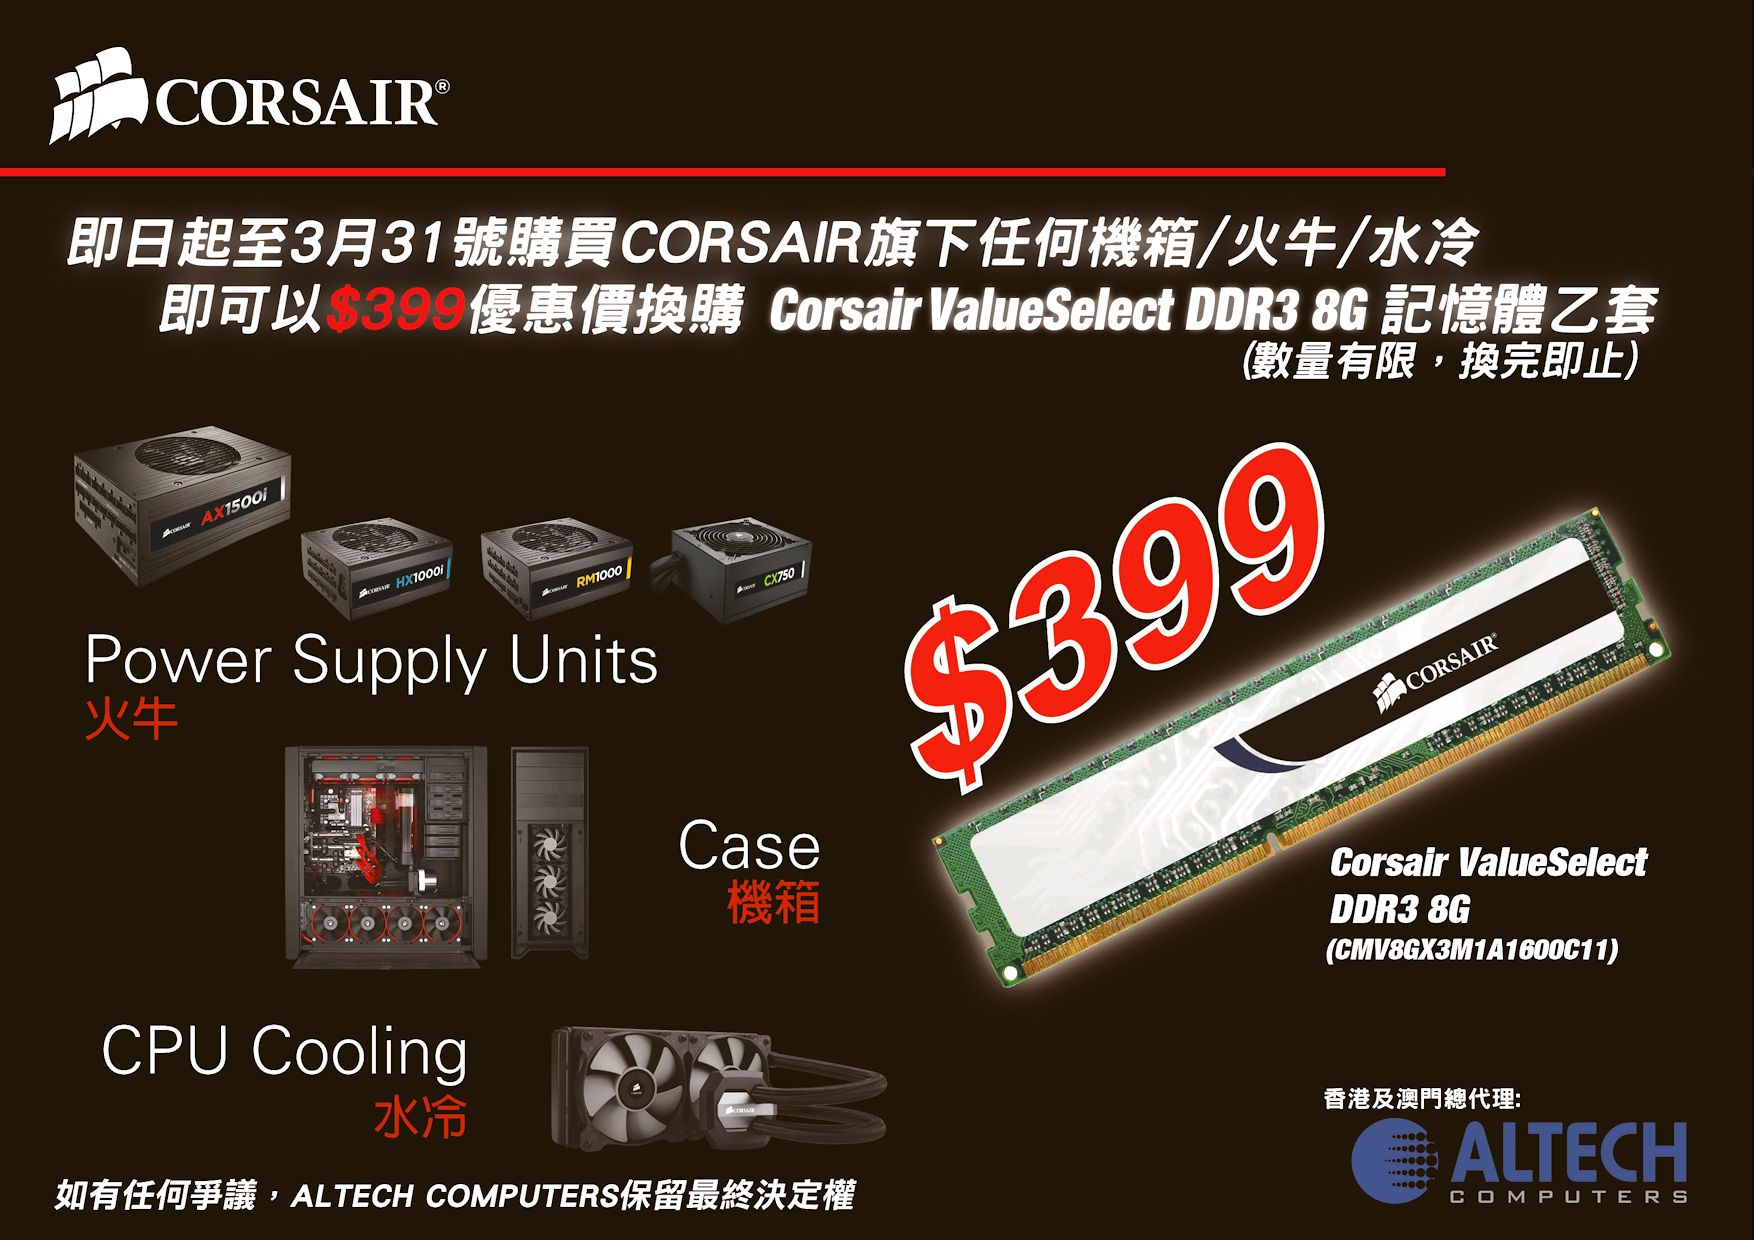 Corsair Ram Promotion